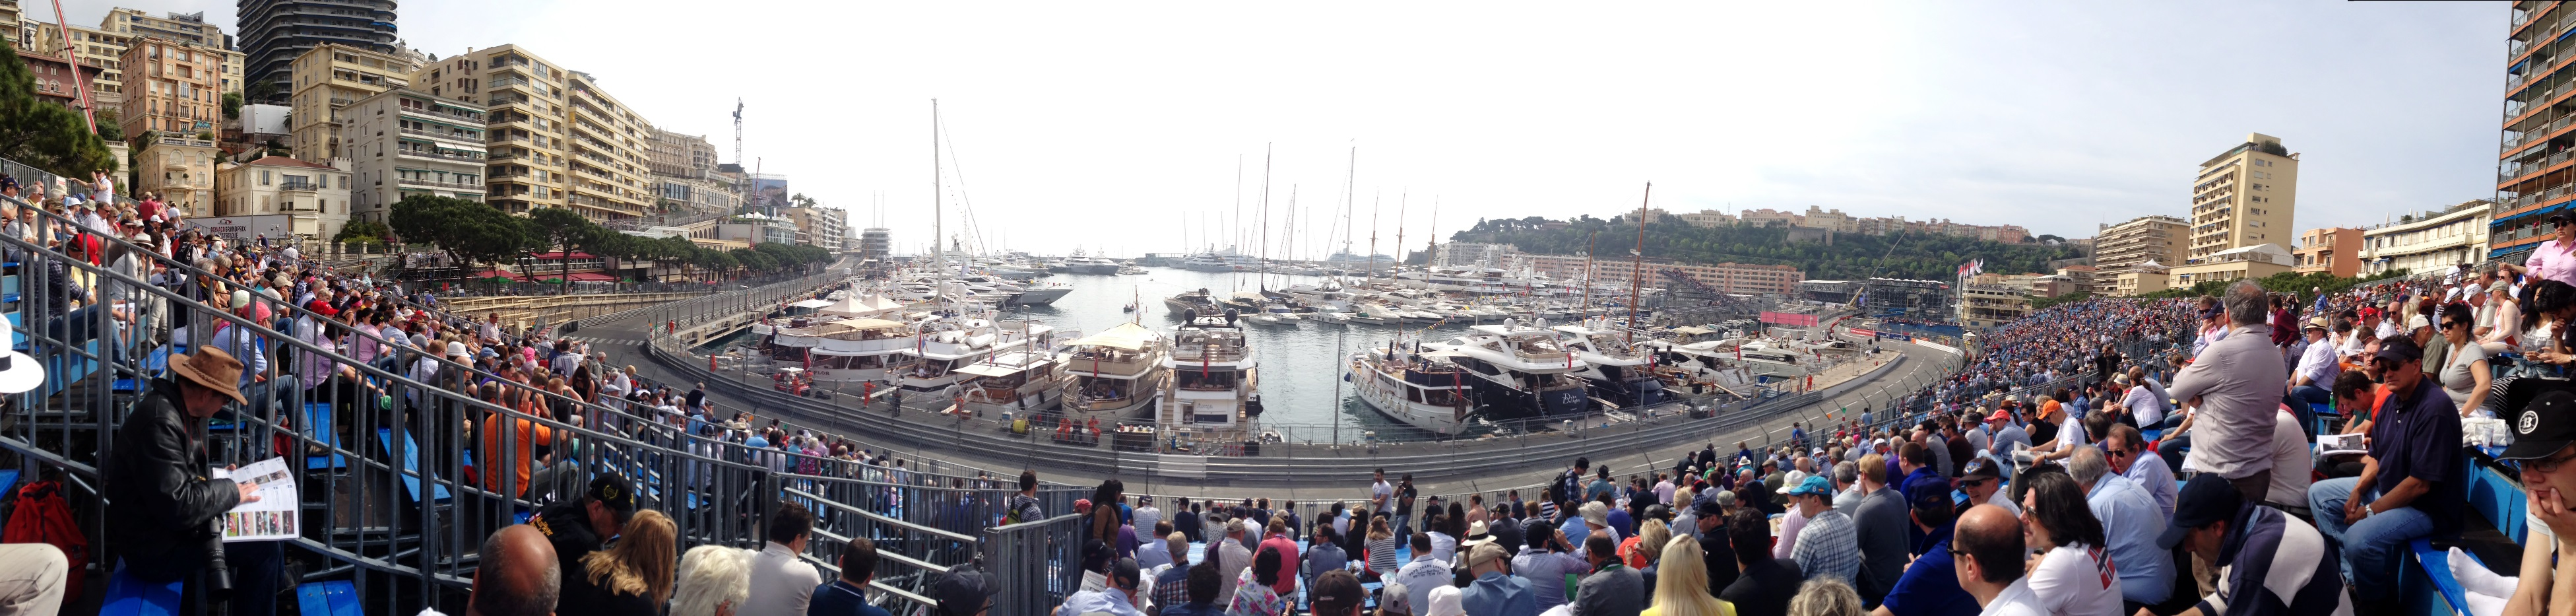 Monaco GP pano no cars low res